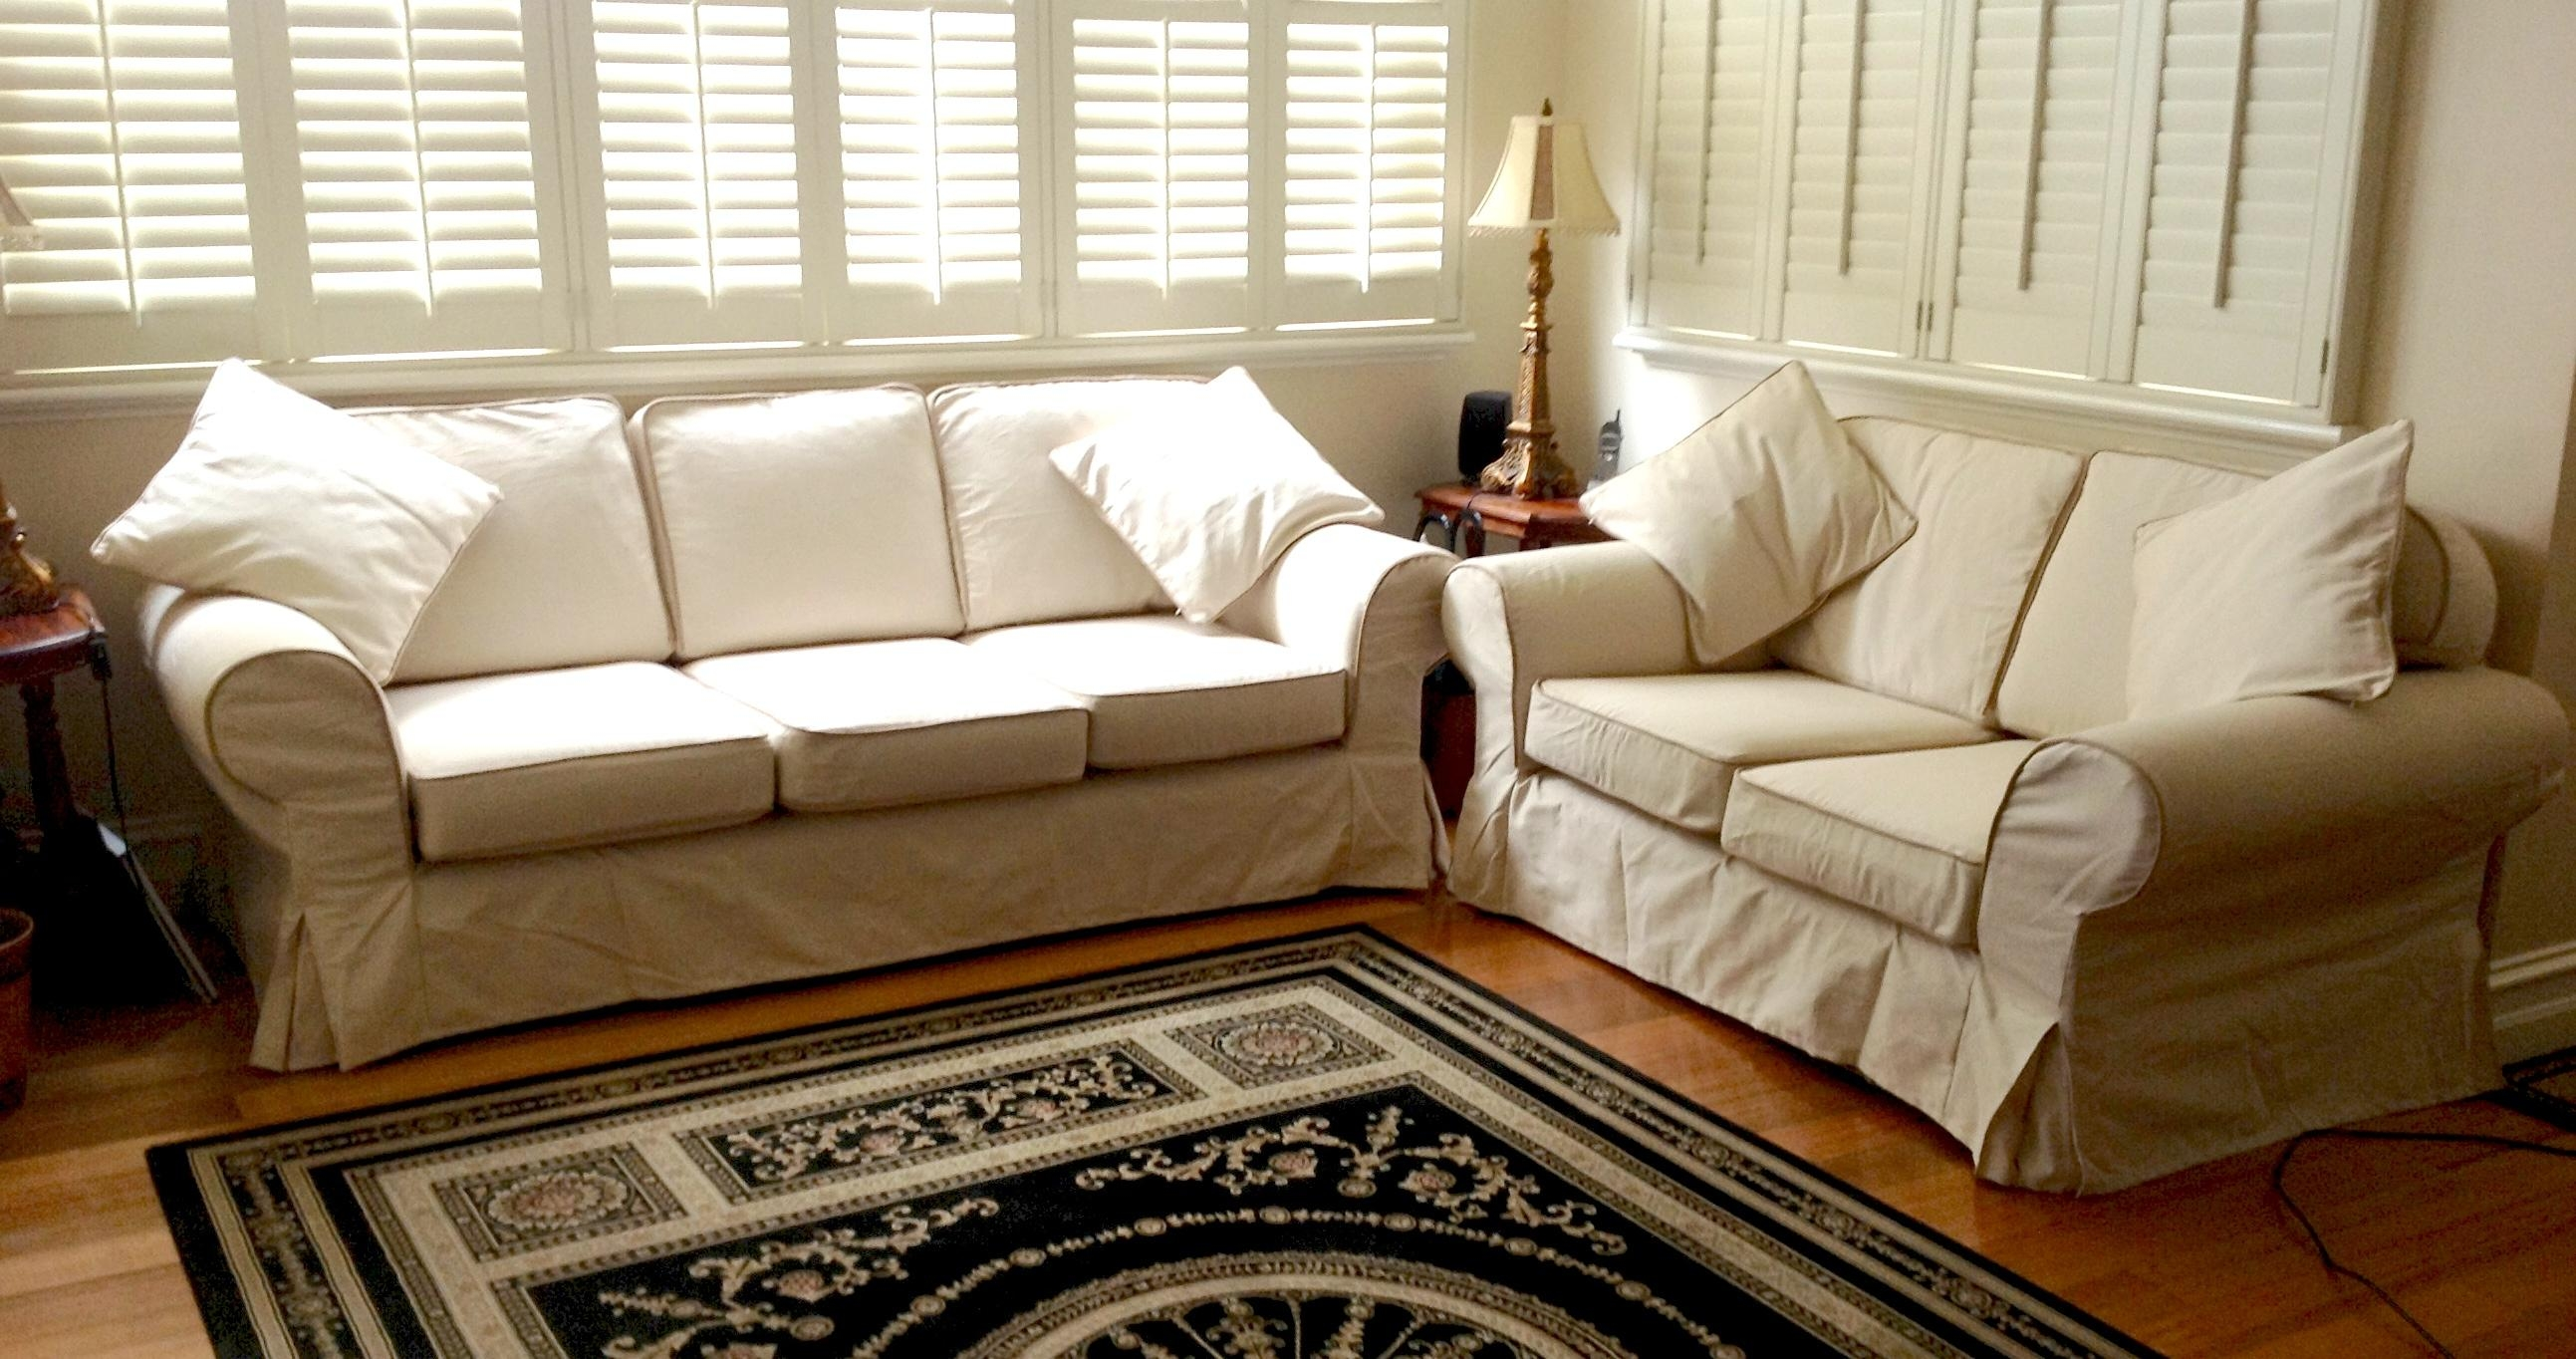 Custom Slipcovers And Couch Cover For Any Sofa Online Regarding Canvas Sofa Slipcovers (Image 5 of 20)